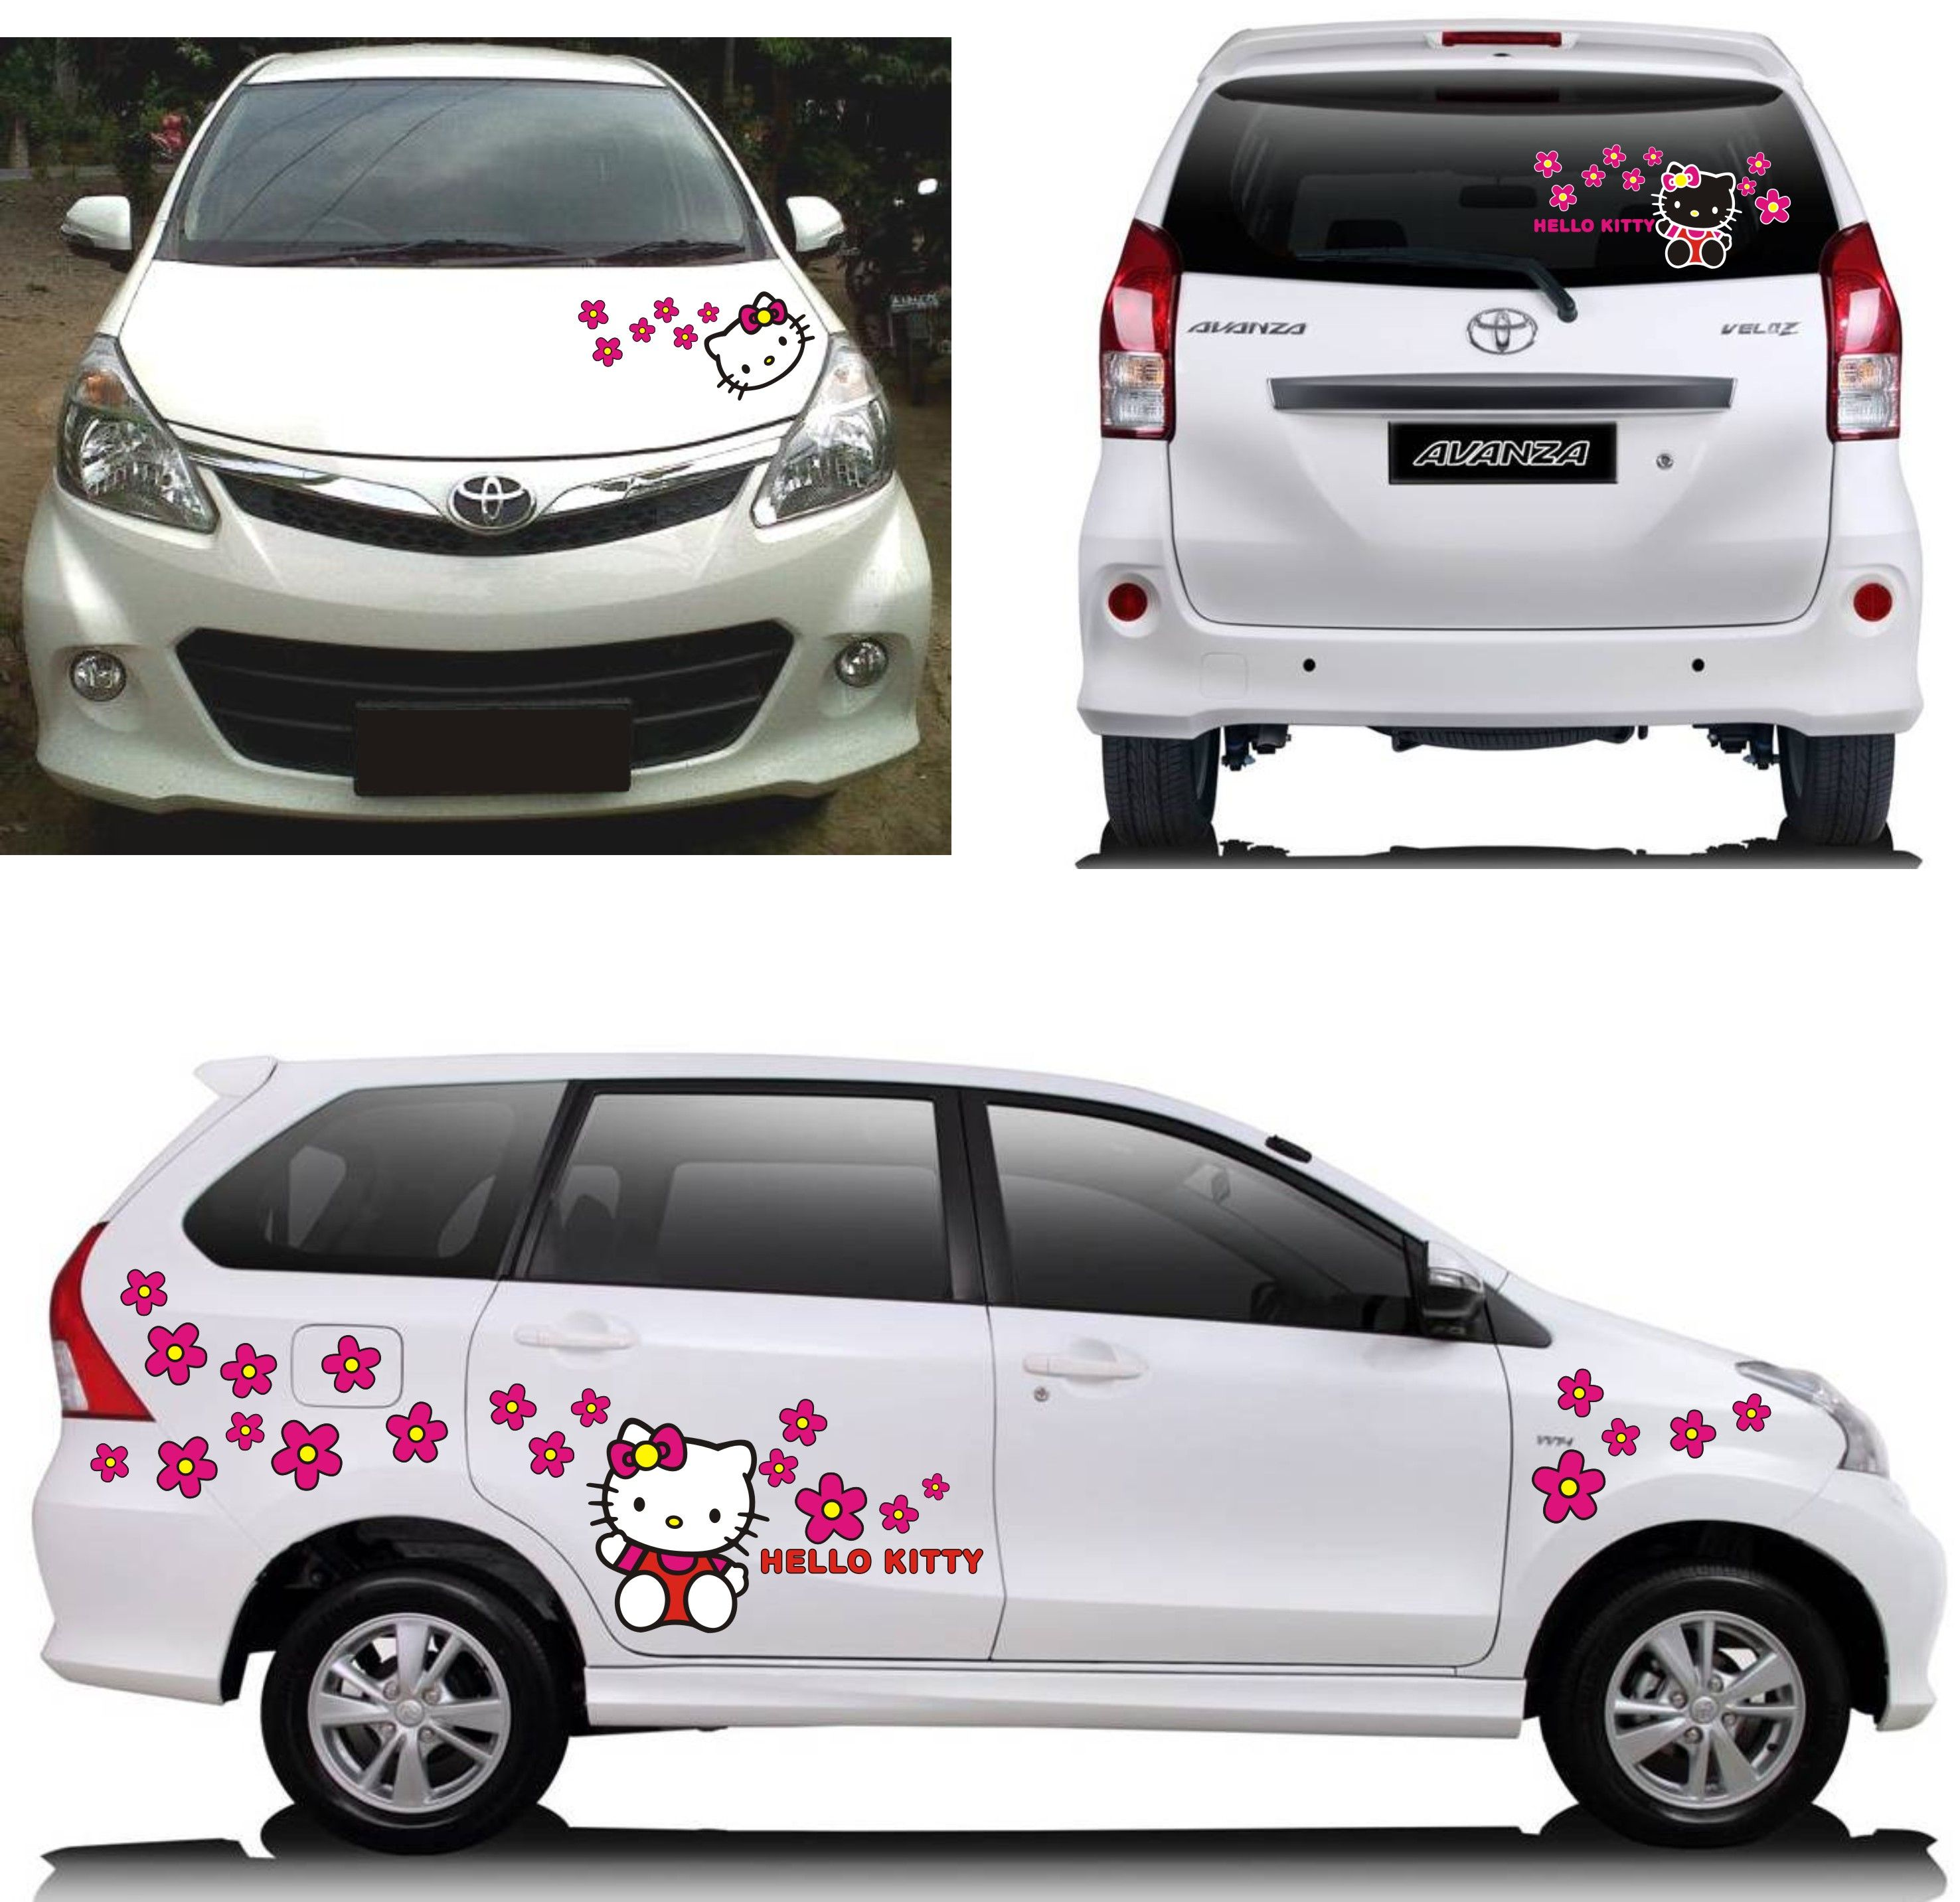 Toyota Avanza Veloz  Hello Kitty Sticker Concept